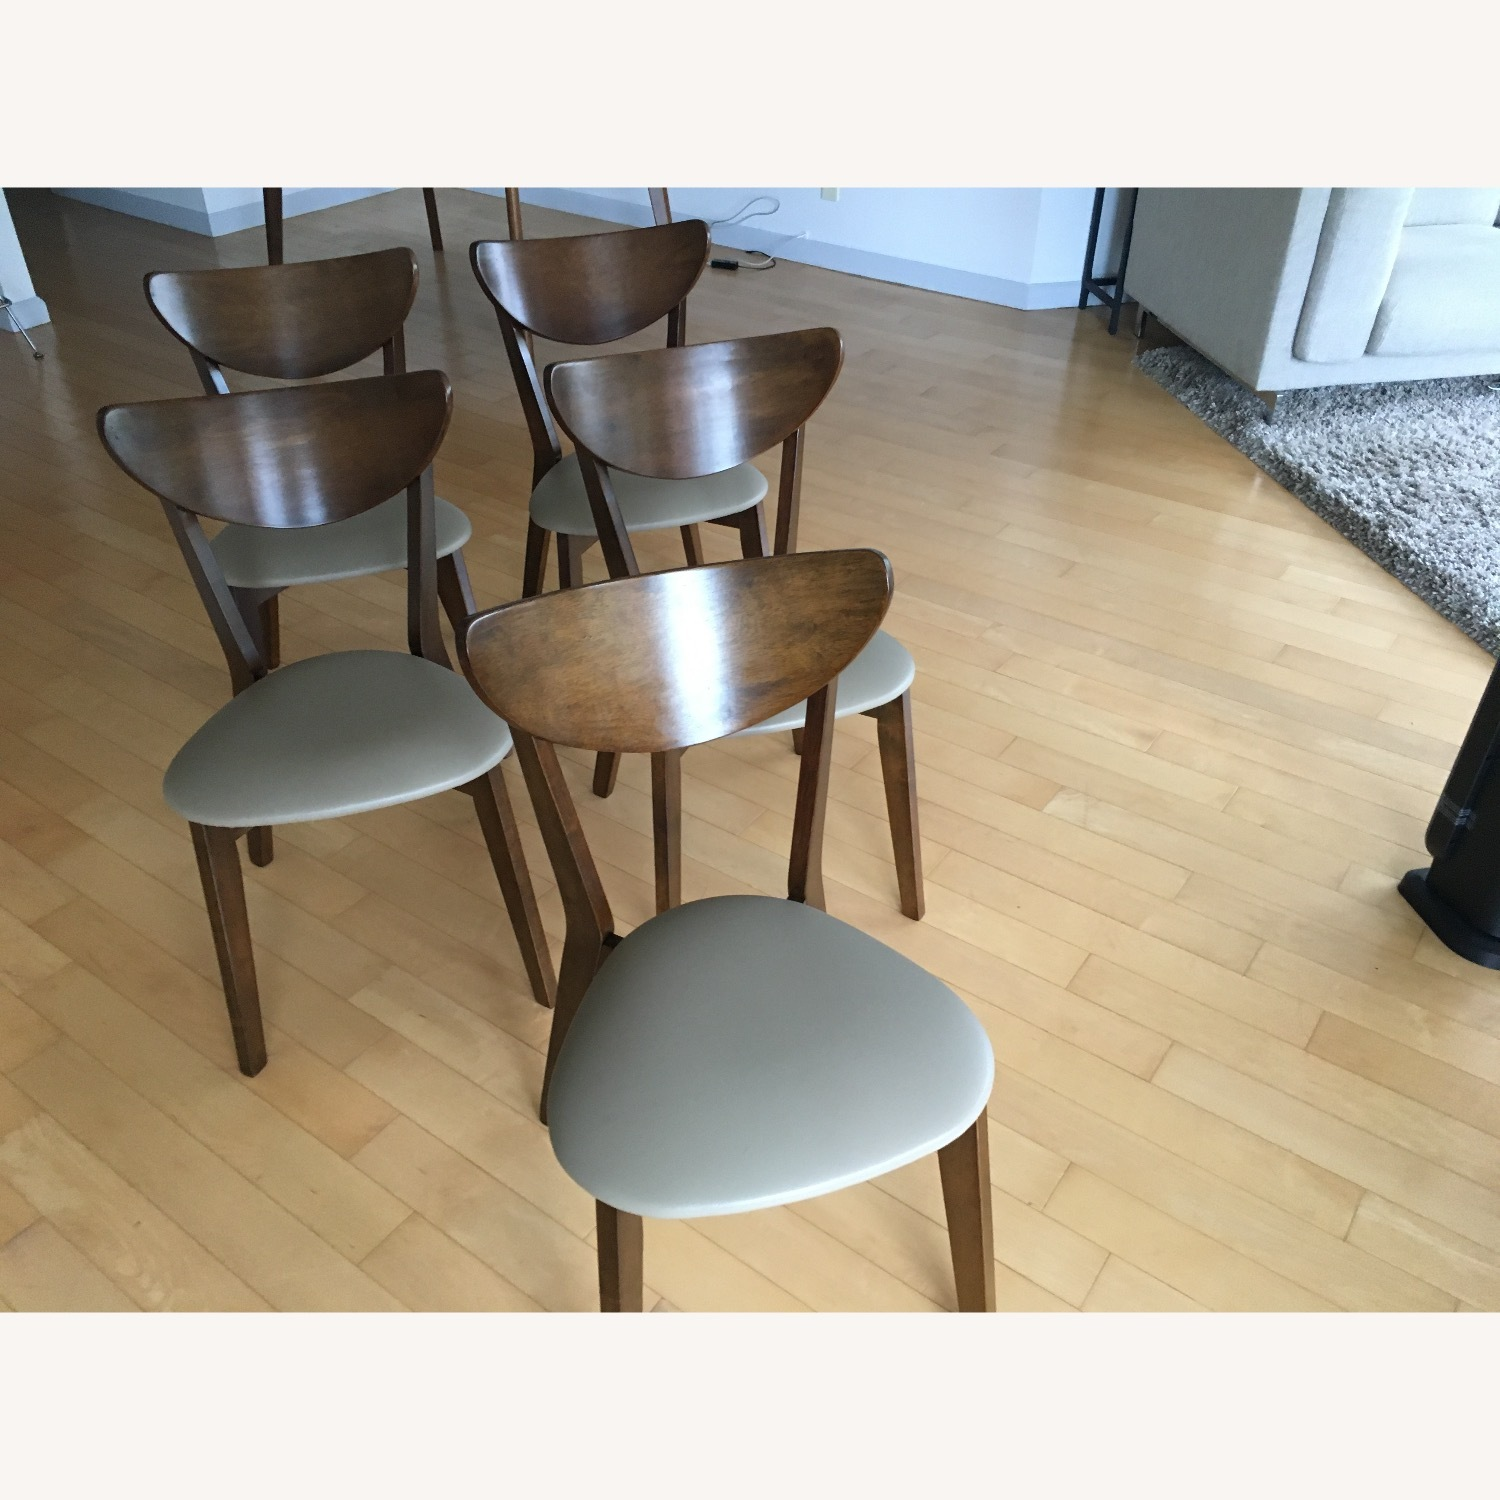 Mid-Century Modern Walnut Dining Table and Chairs - image-3